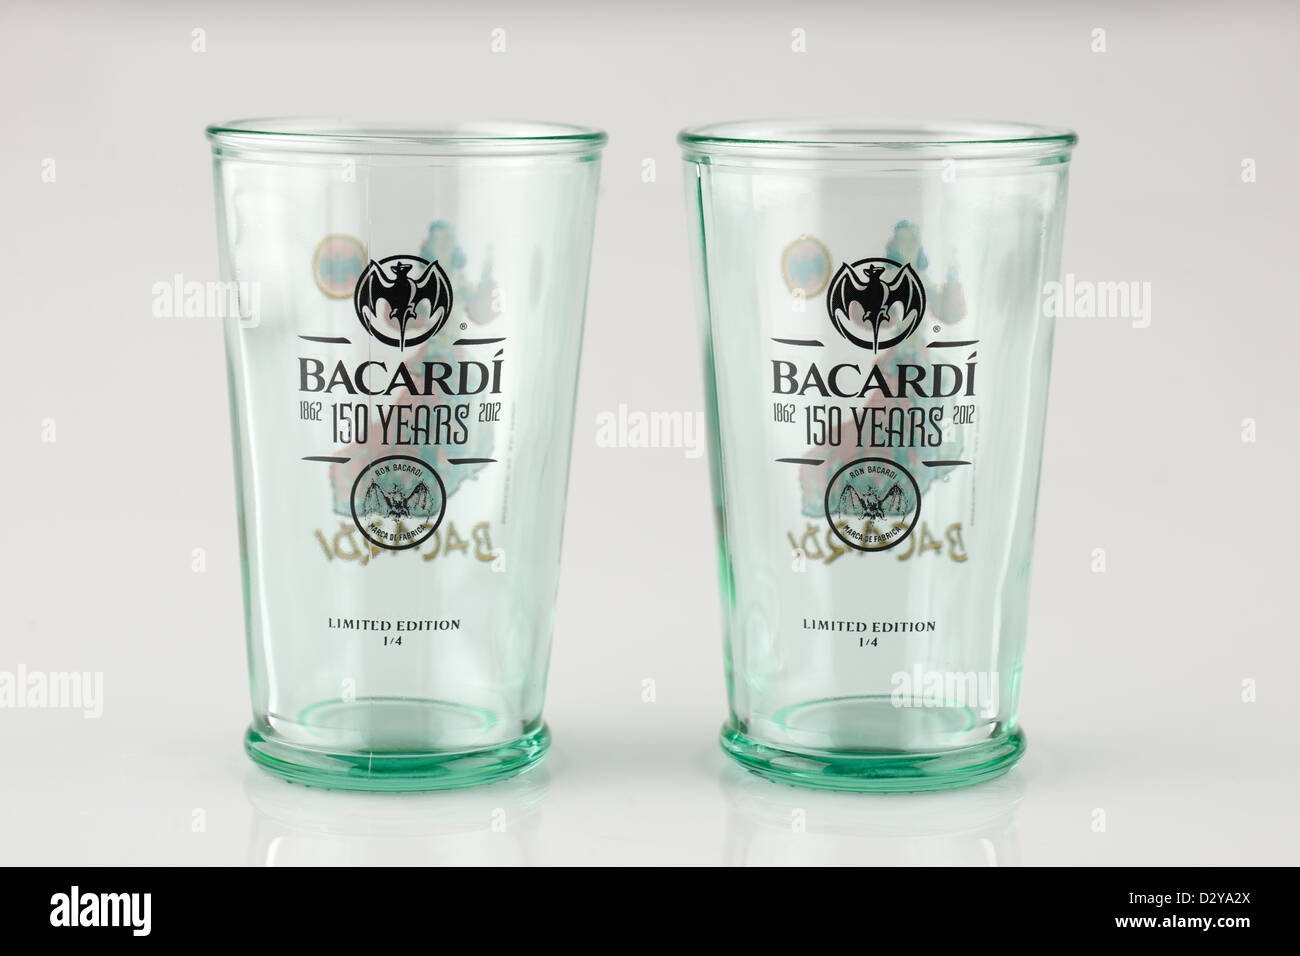 Two limited edition thick glass Bacard glass tumblers celebrating 150 years of production 1862 to 2012 - Stock Image